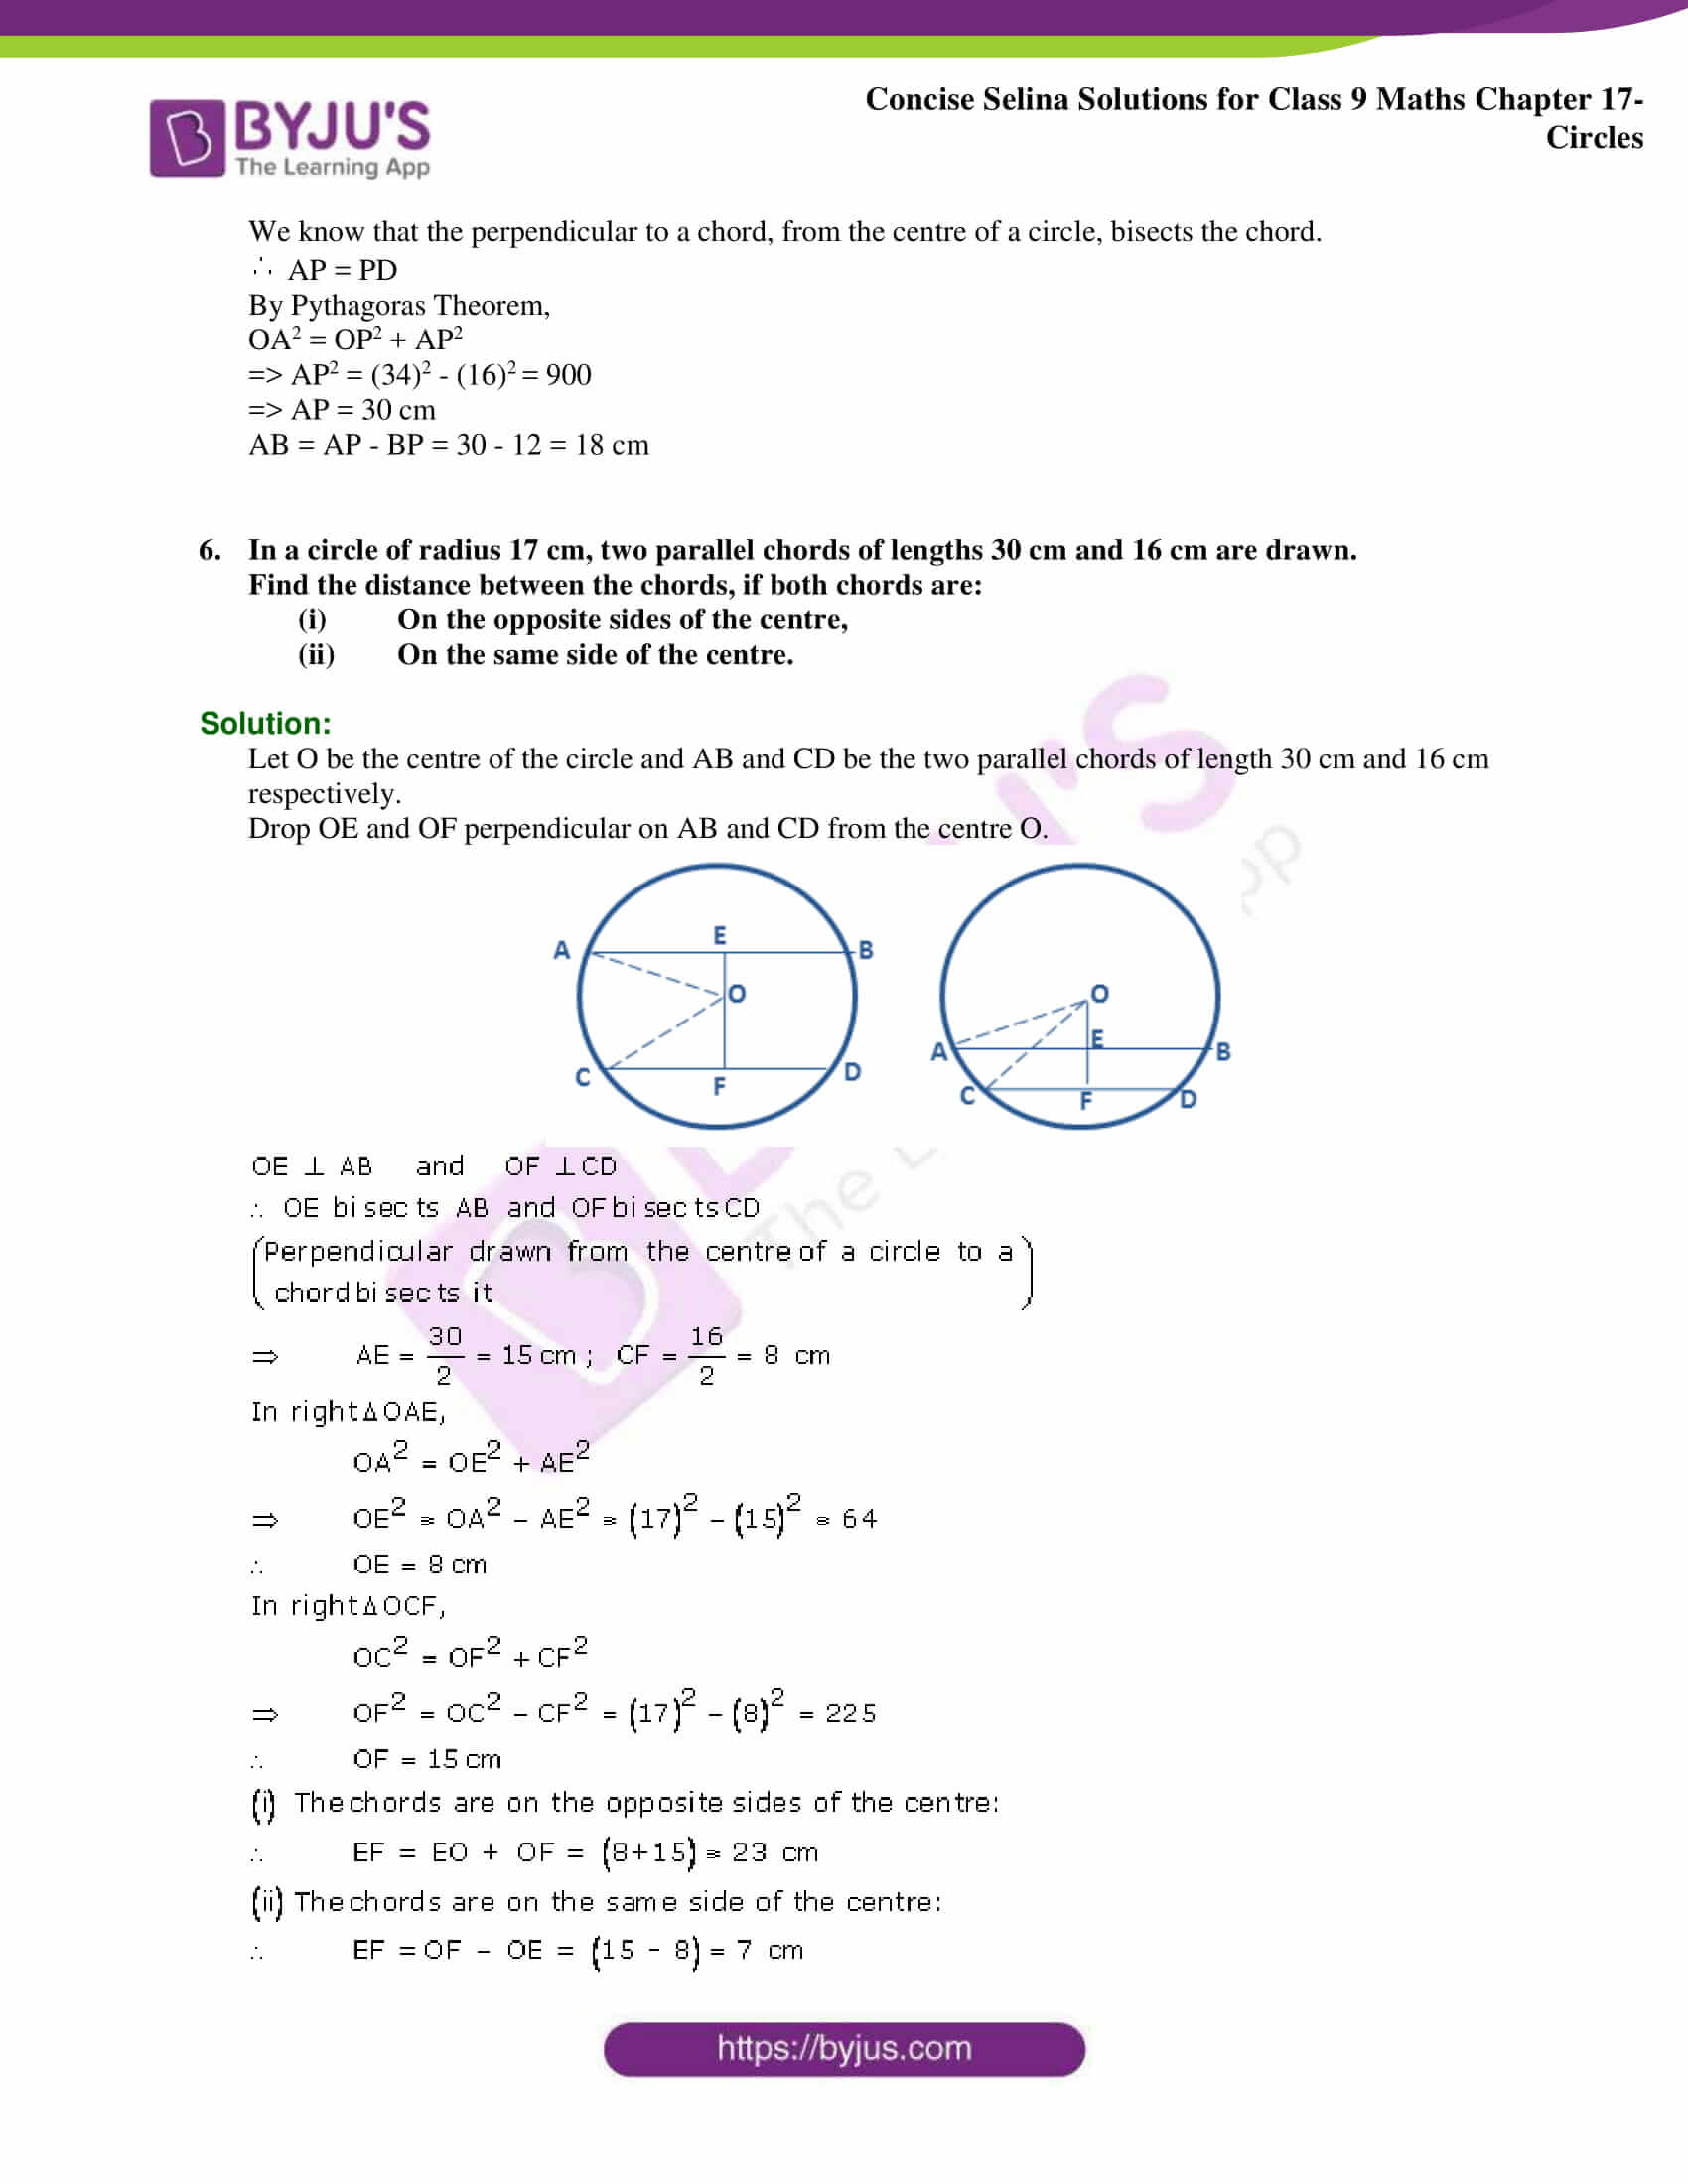 Concise Selina Solutions Class 9 Maths Chapter 17 Circles part 04